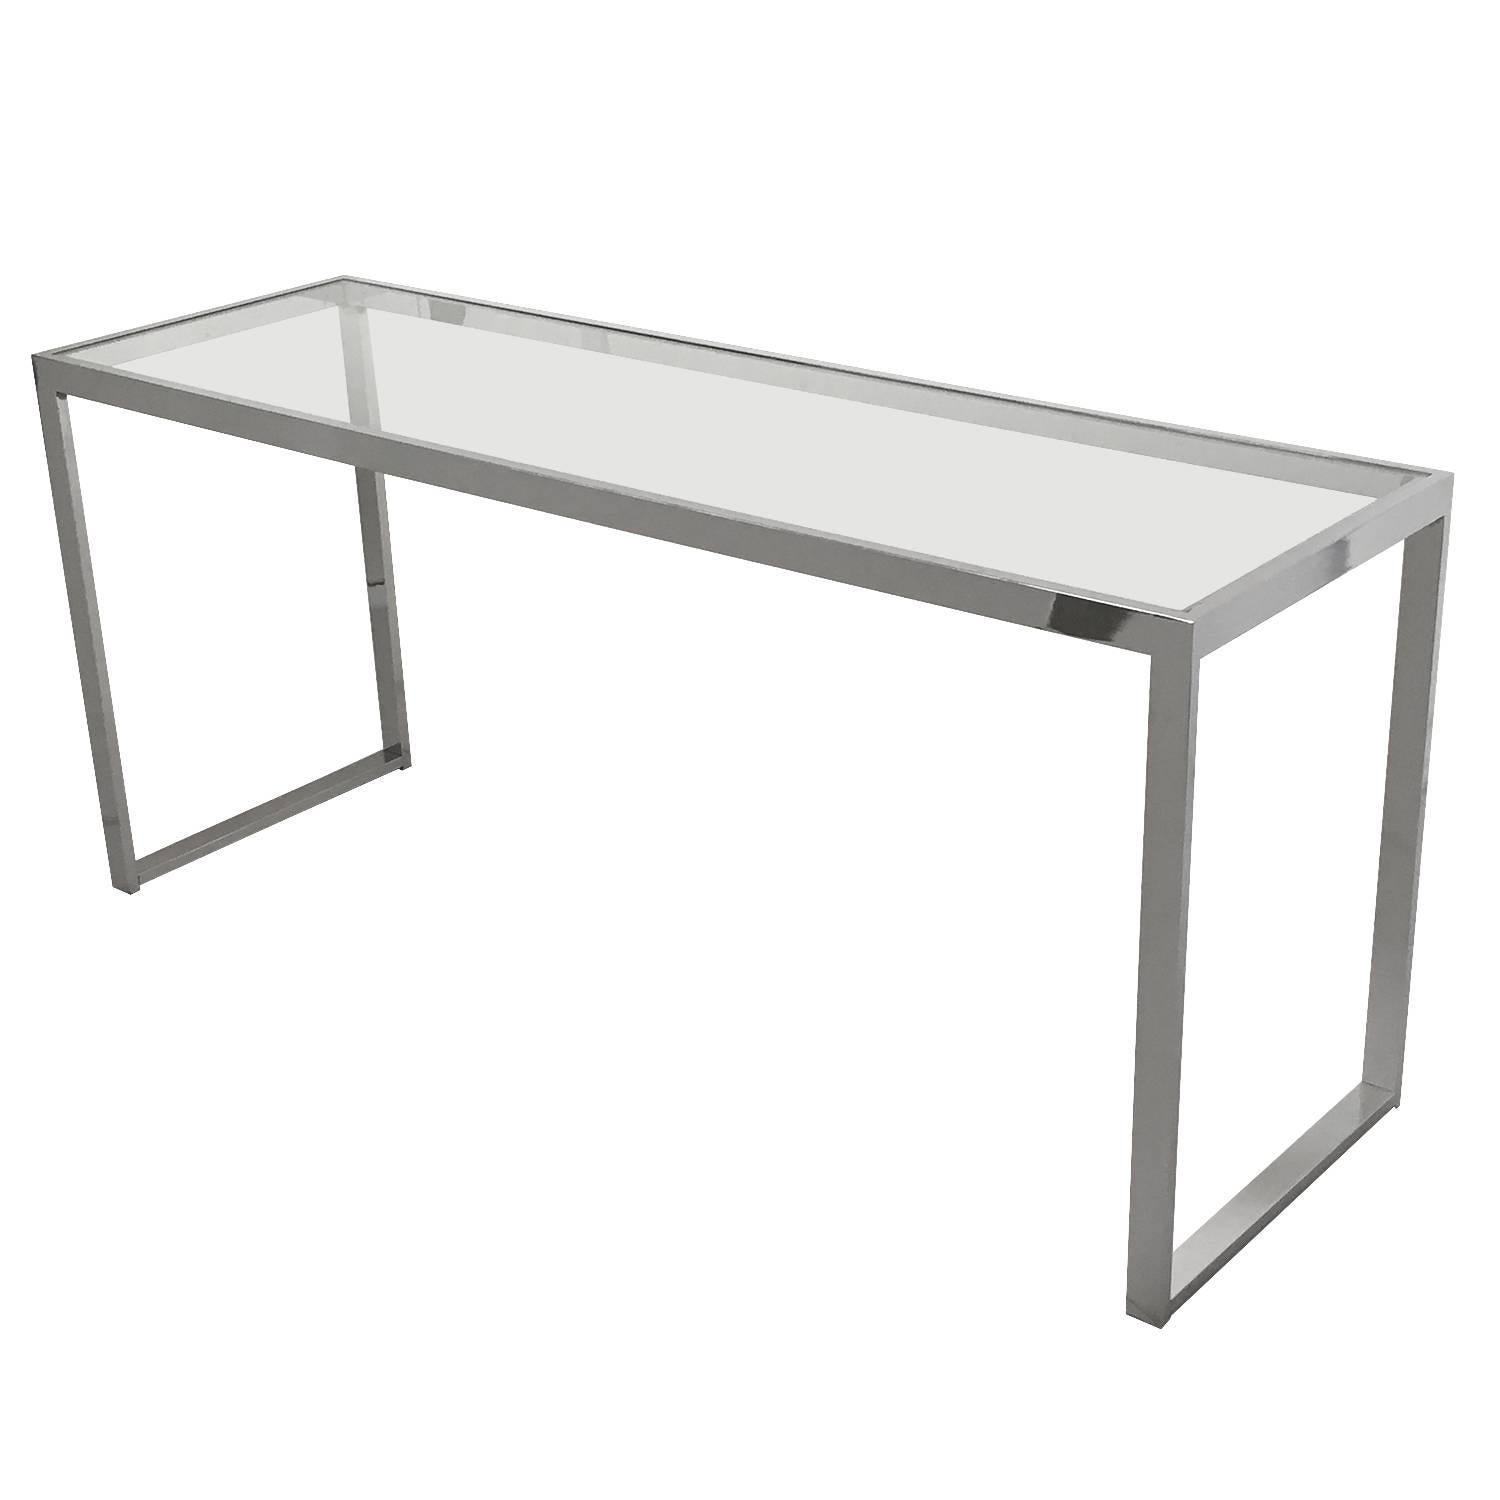 Milo Baughman Style Chrome and Glass Console Table at 1stdibs